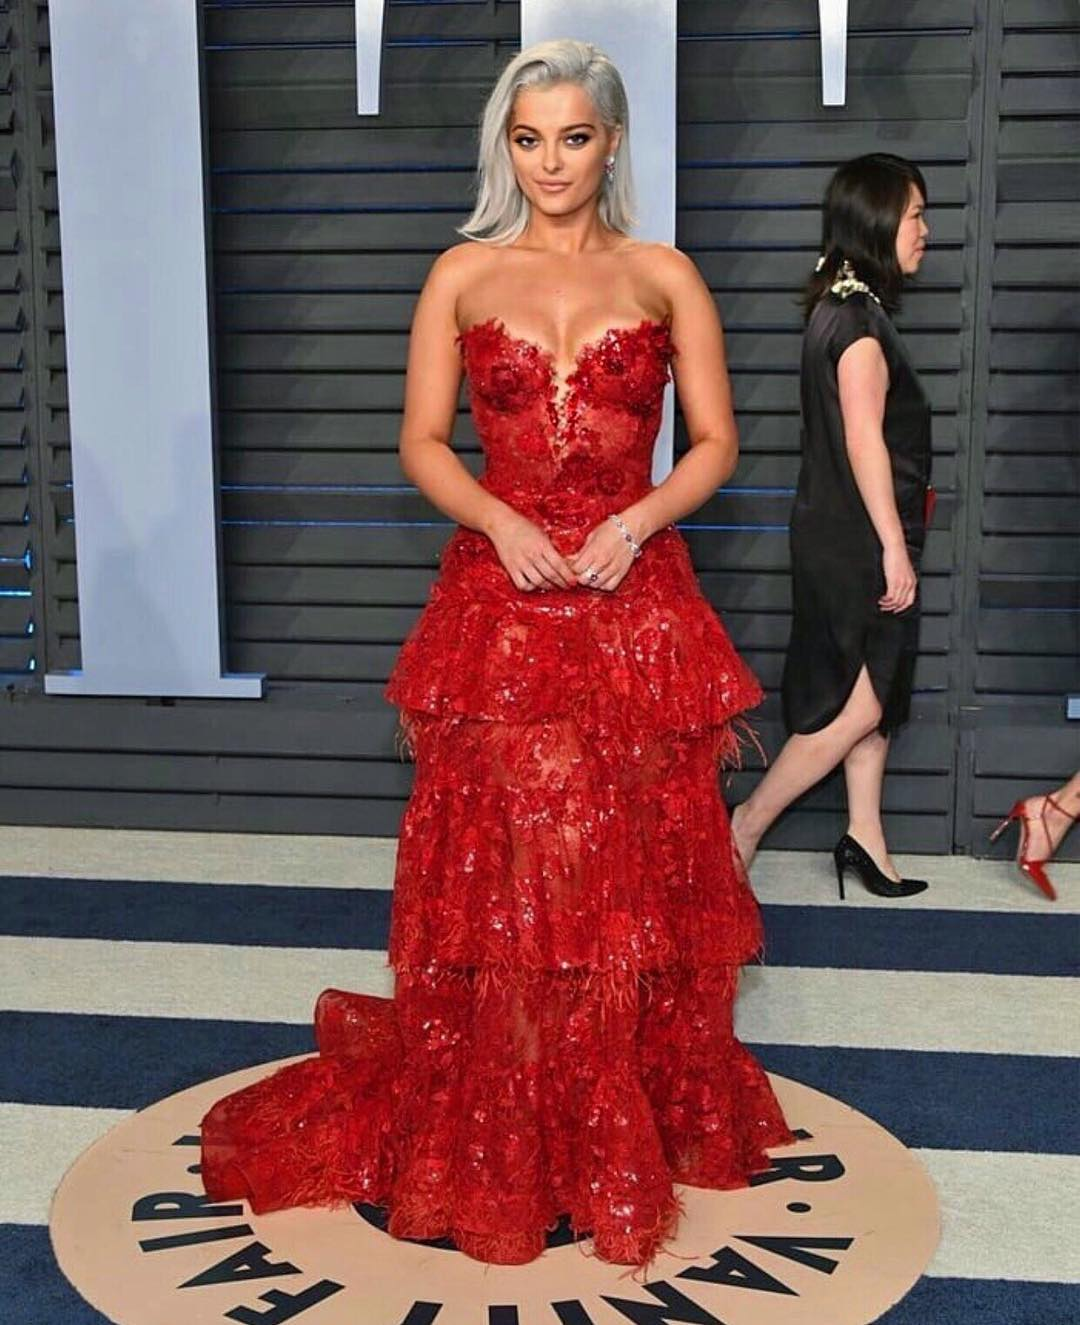 Bebe-Rexha-awesome-hot-dress